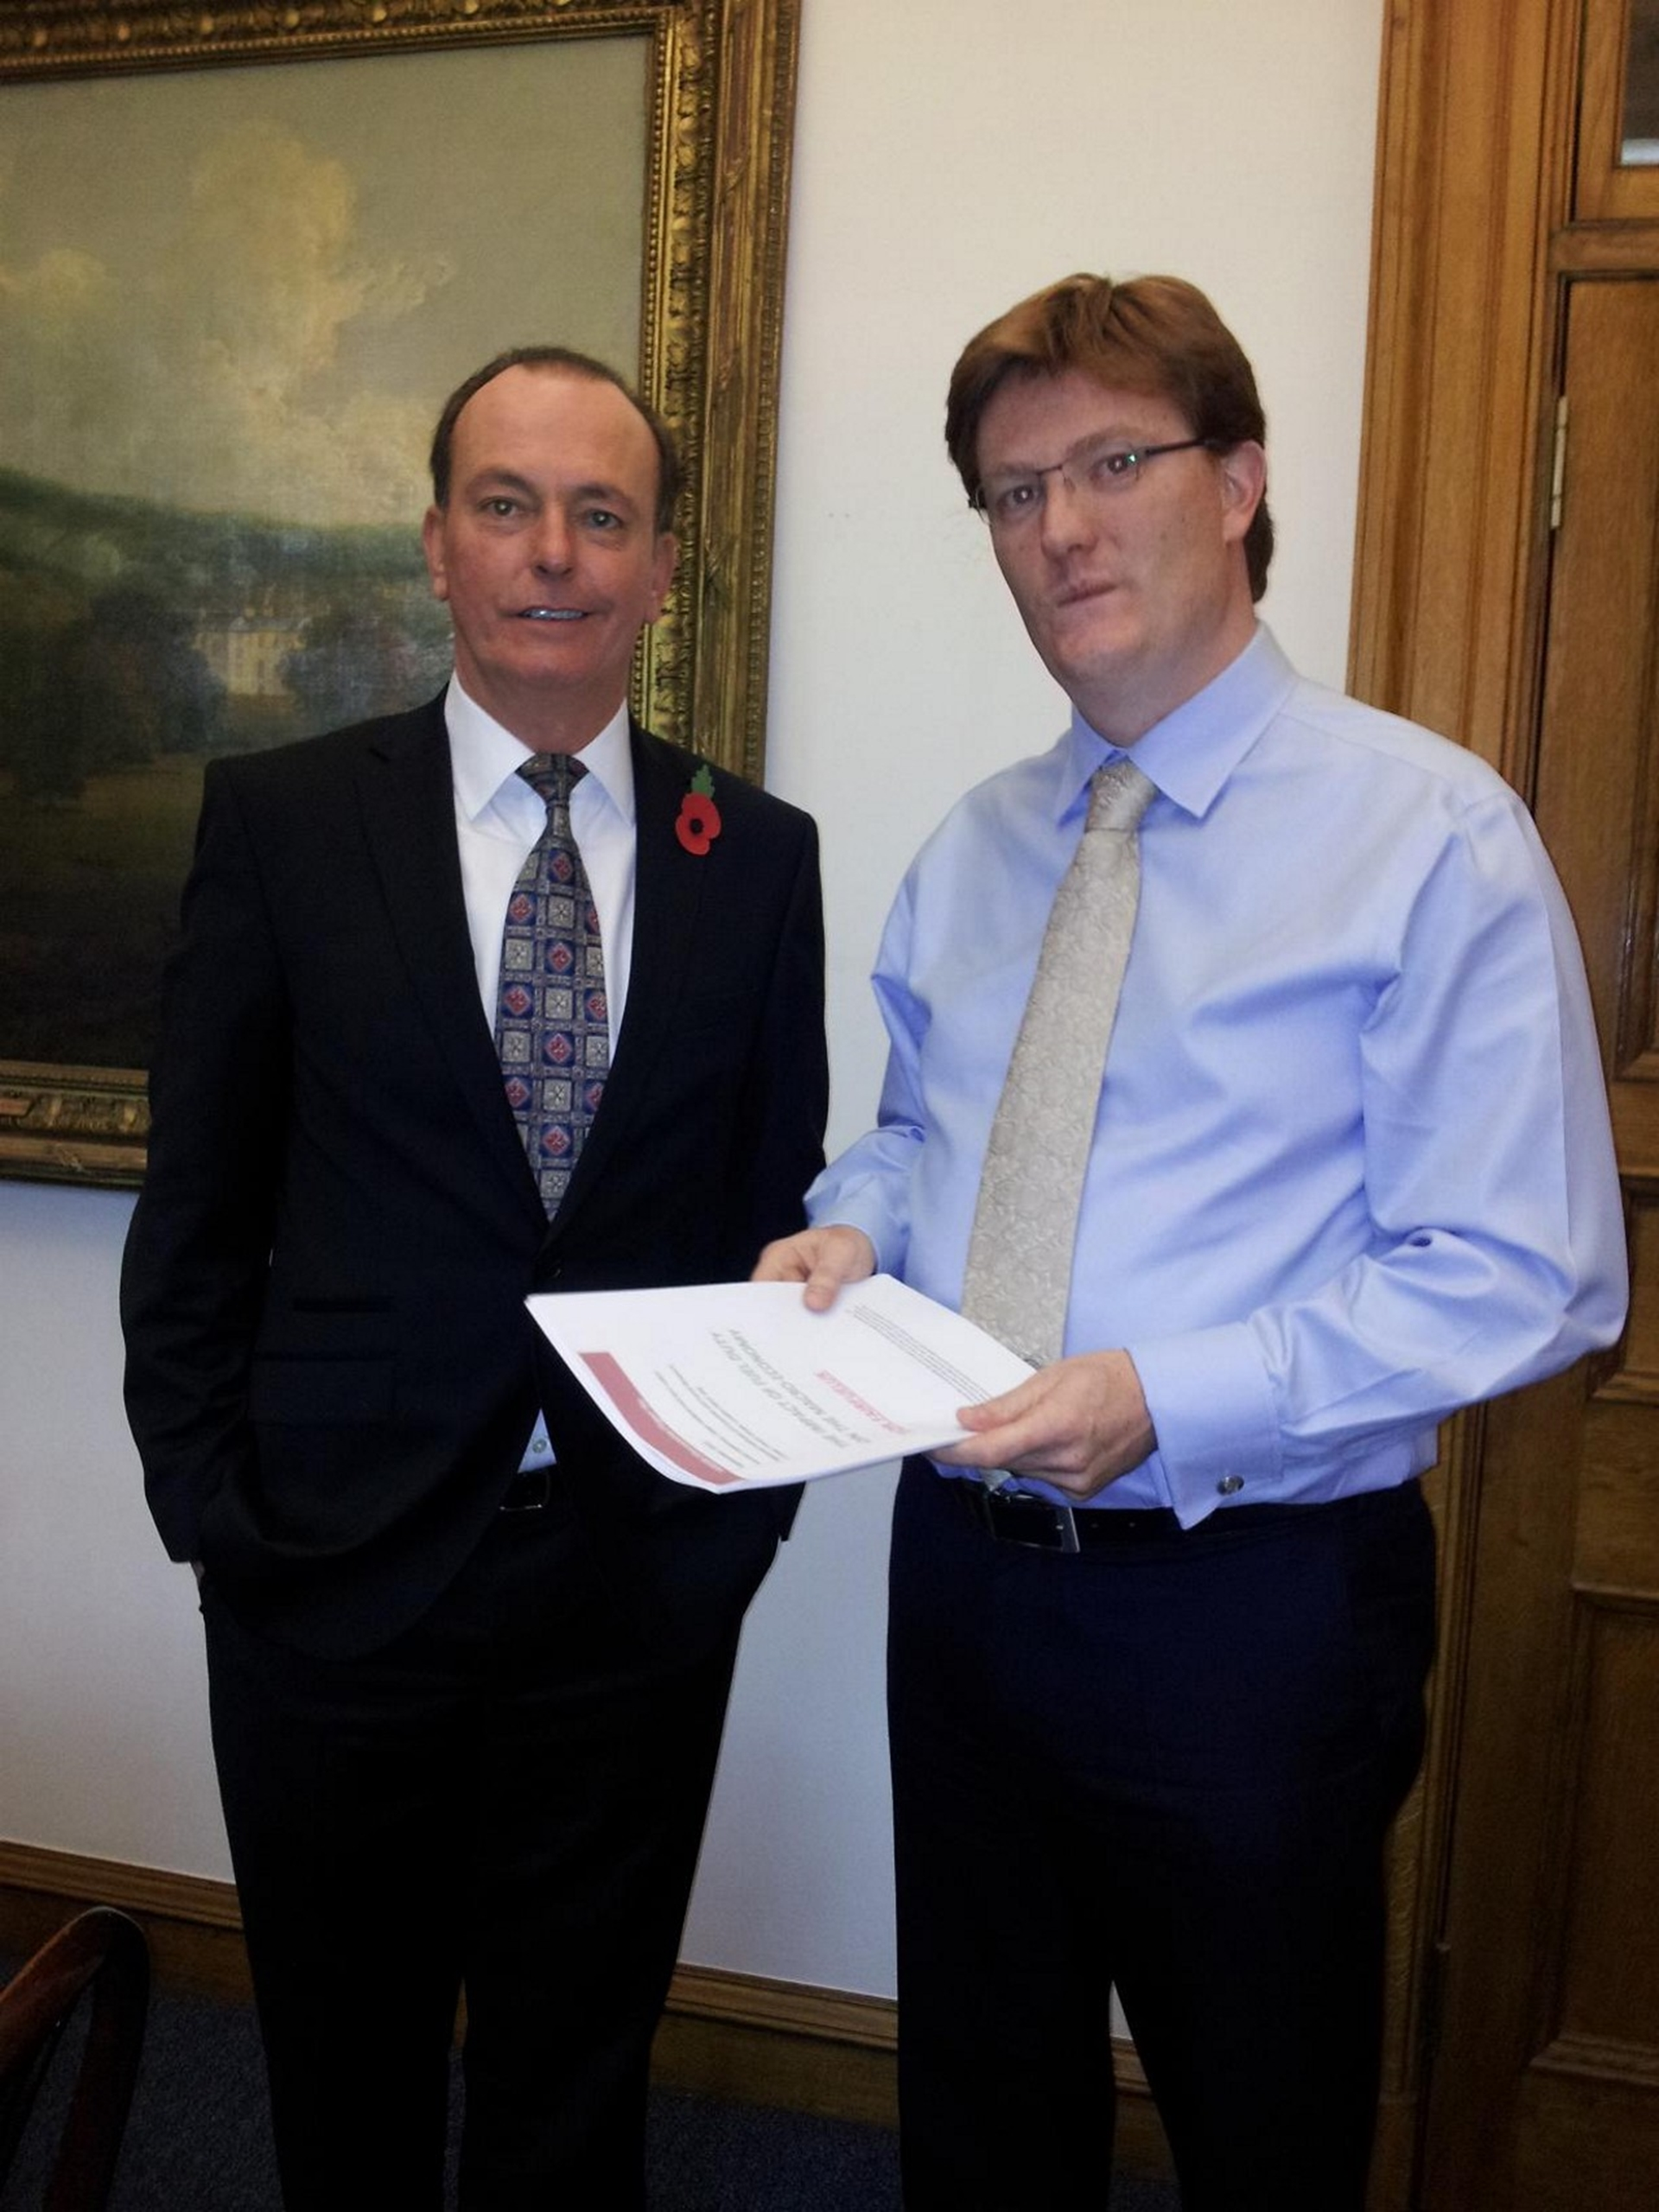 Fuel campaigners meet with top Treasury team